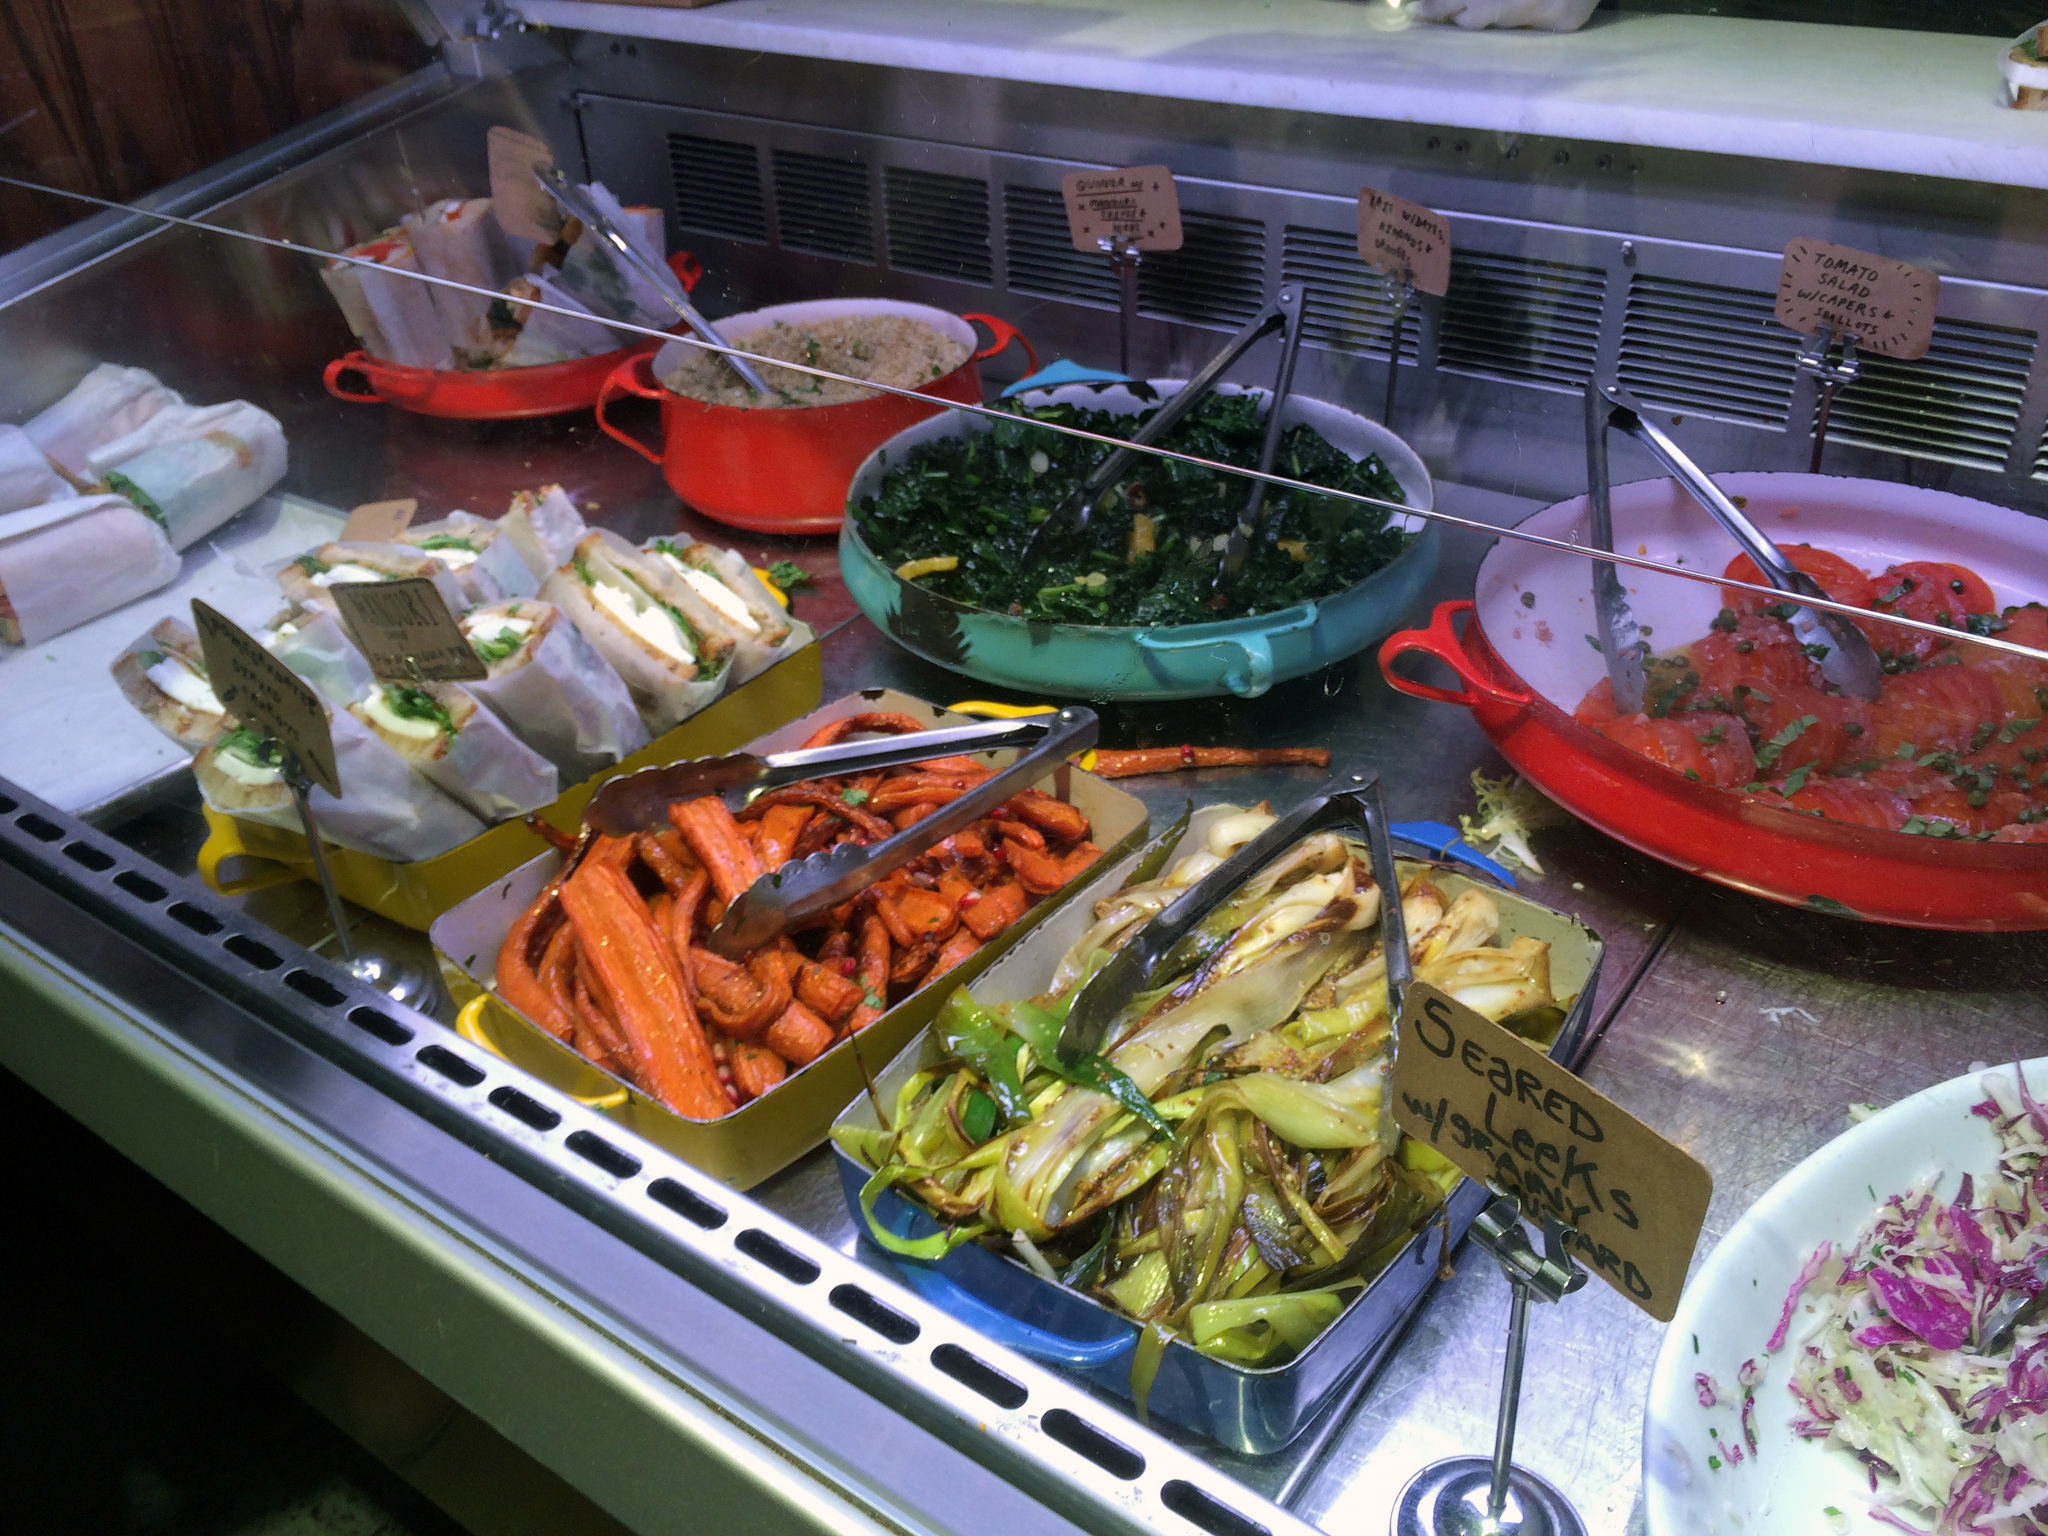 Salads and side dishes at Smile To Go in New York. Photo by alphacityguides.